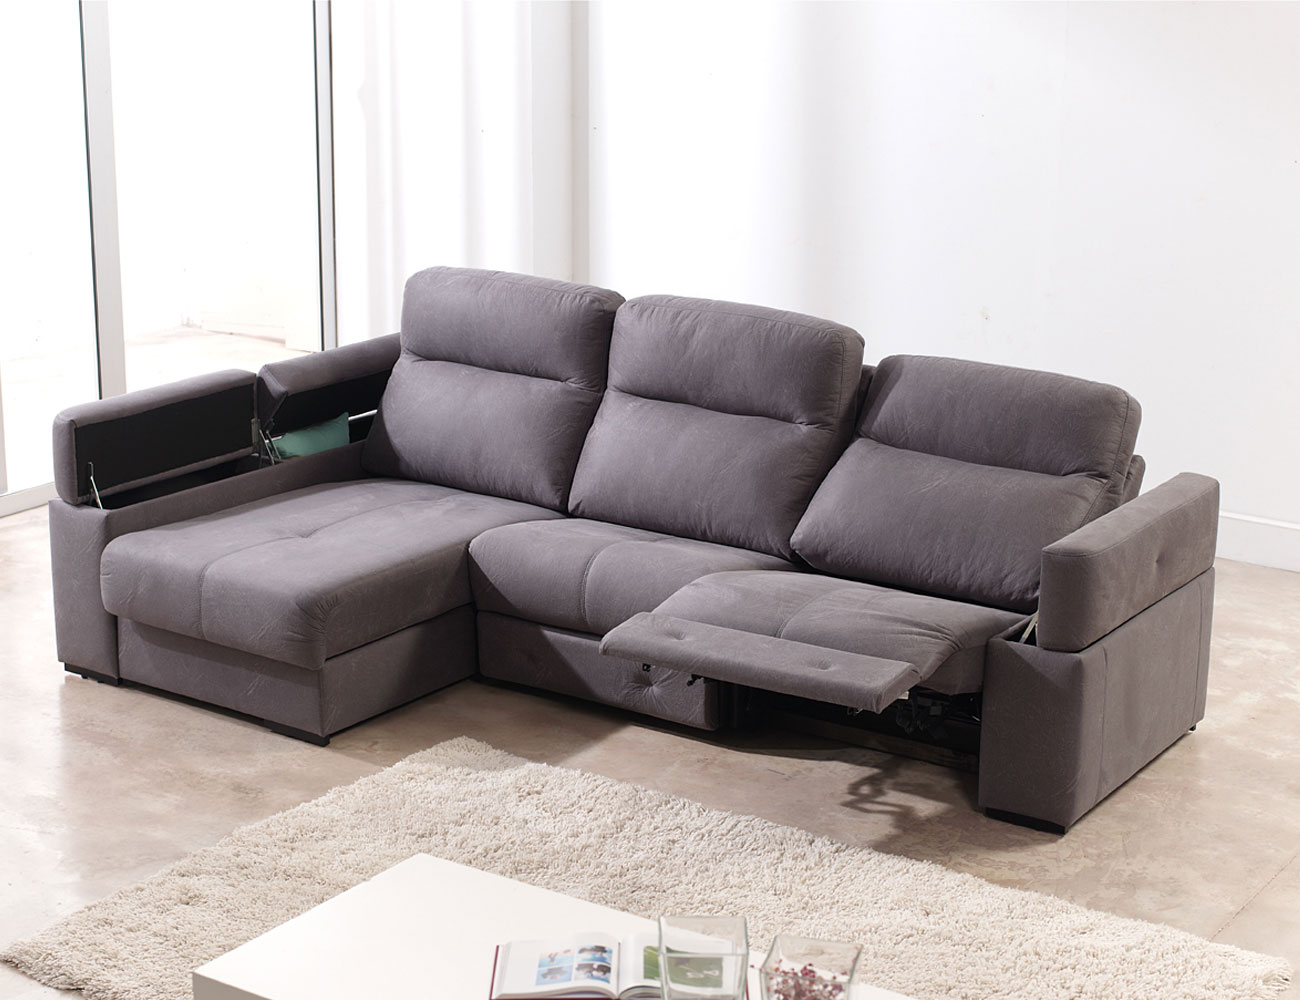 Sofa chaiselongue relax motor electrico 3 arcon 112